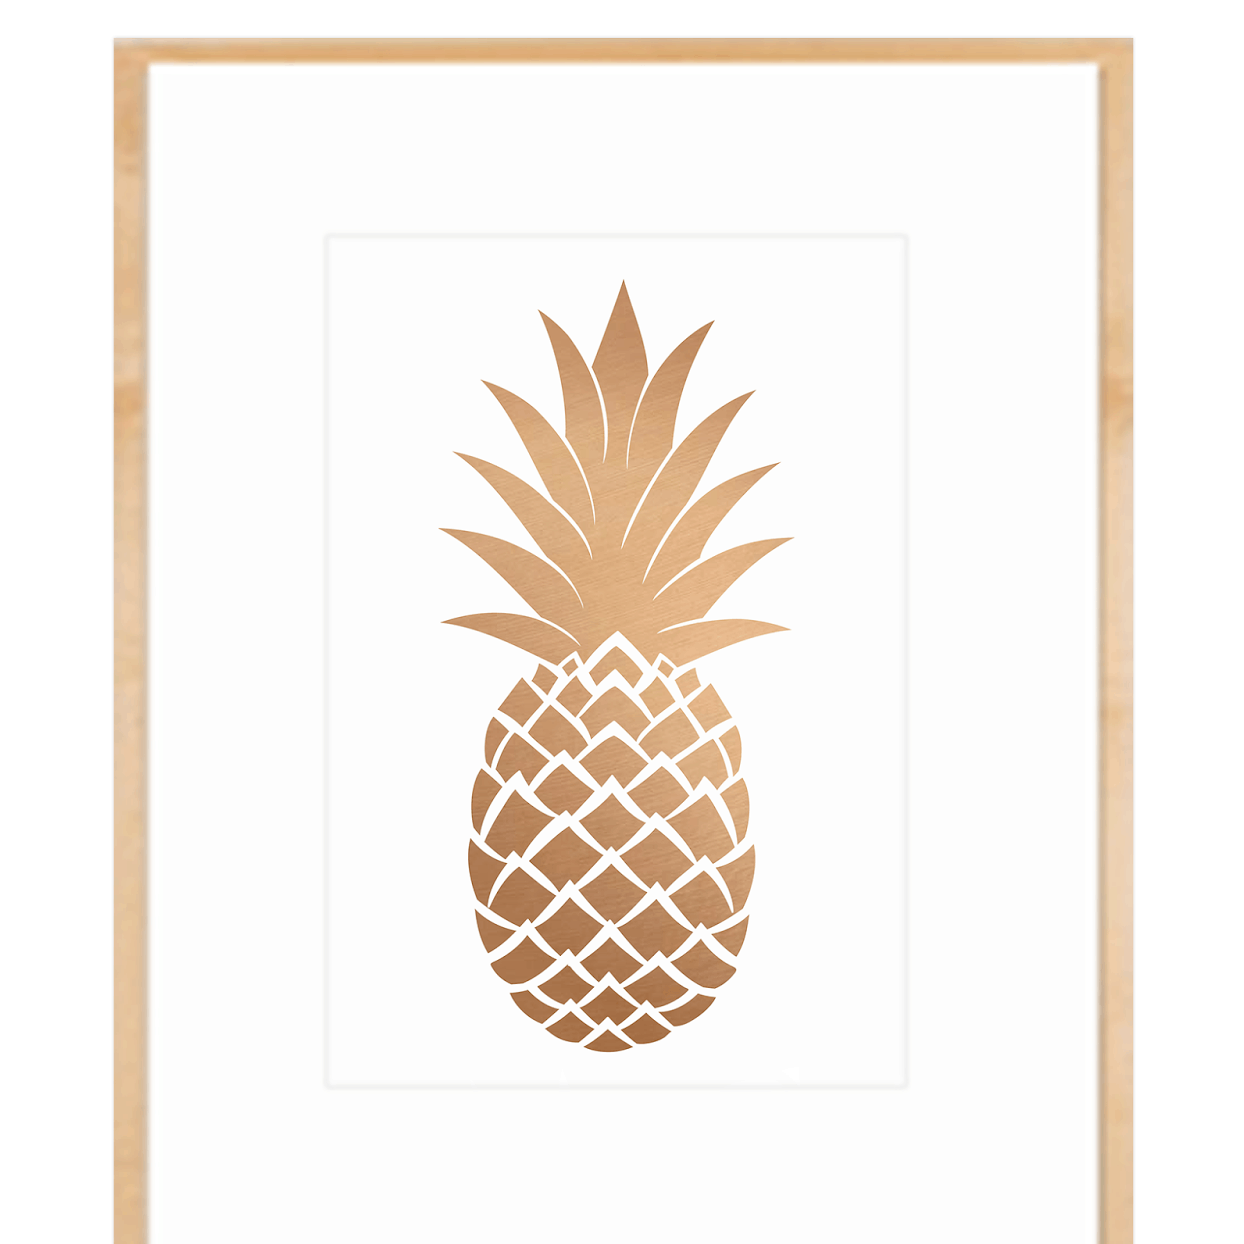 This is an image of Massif Pineapple Stencil Printable